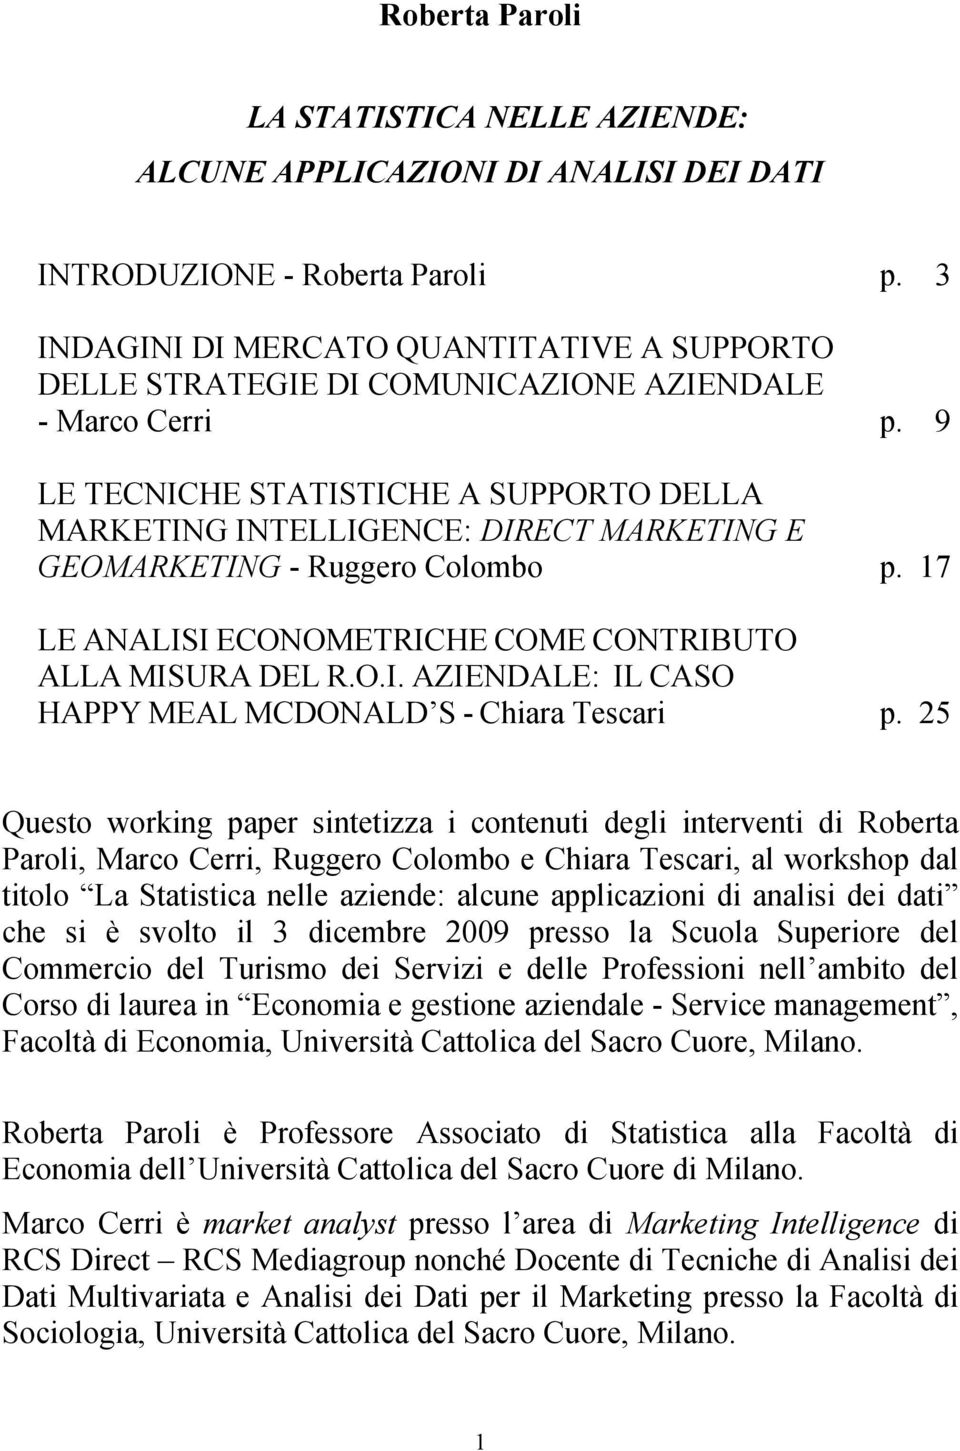 9 LE TECNICHE STATISTICHE A SUPPORTO DELLA MARKETING INTELLIGENCE: DIRECT MARKETING E GEOMARKETING - Ruggero Colombo p. 17 LE ANALISI ECONOMETRICHE COME CONTRIBUTO ALLA MISURA DEL R.O.I. AZIENDALE: IL CASO HAPPY MEAL MCDONALD S - Chiara Tescari p.